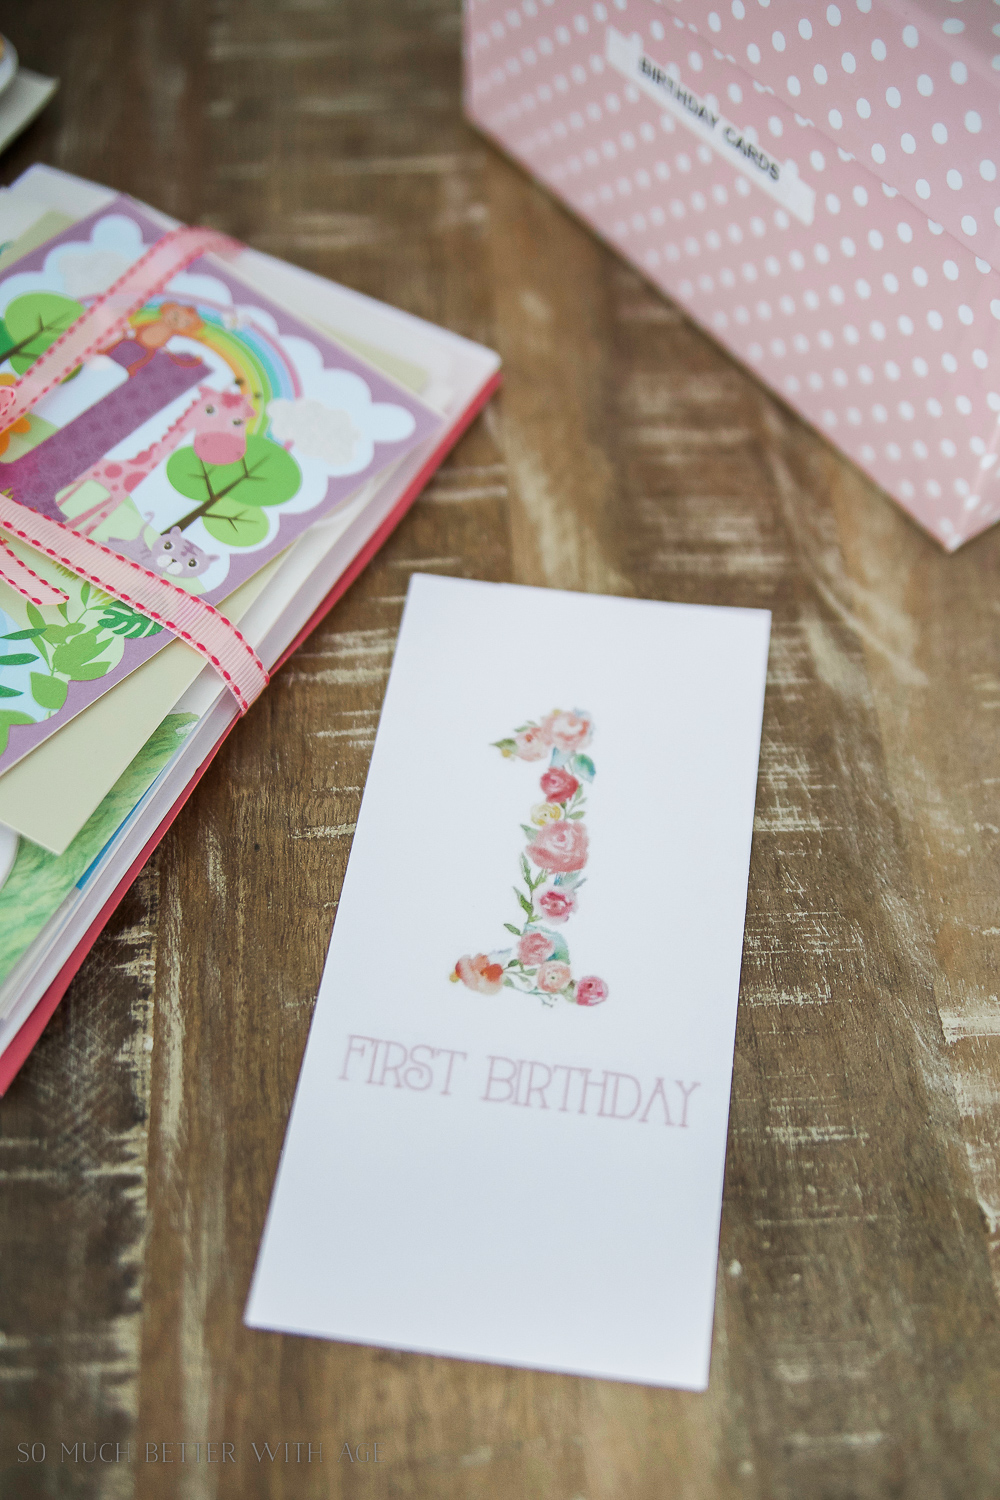 Organizing Kids Keepsakes (Birthday Cards) Printable/first birthday - So Much Better With Age